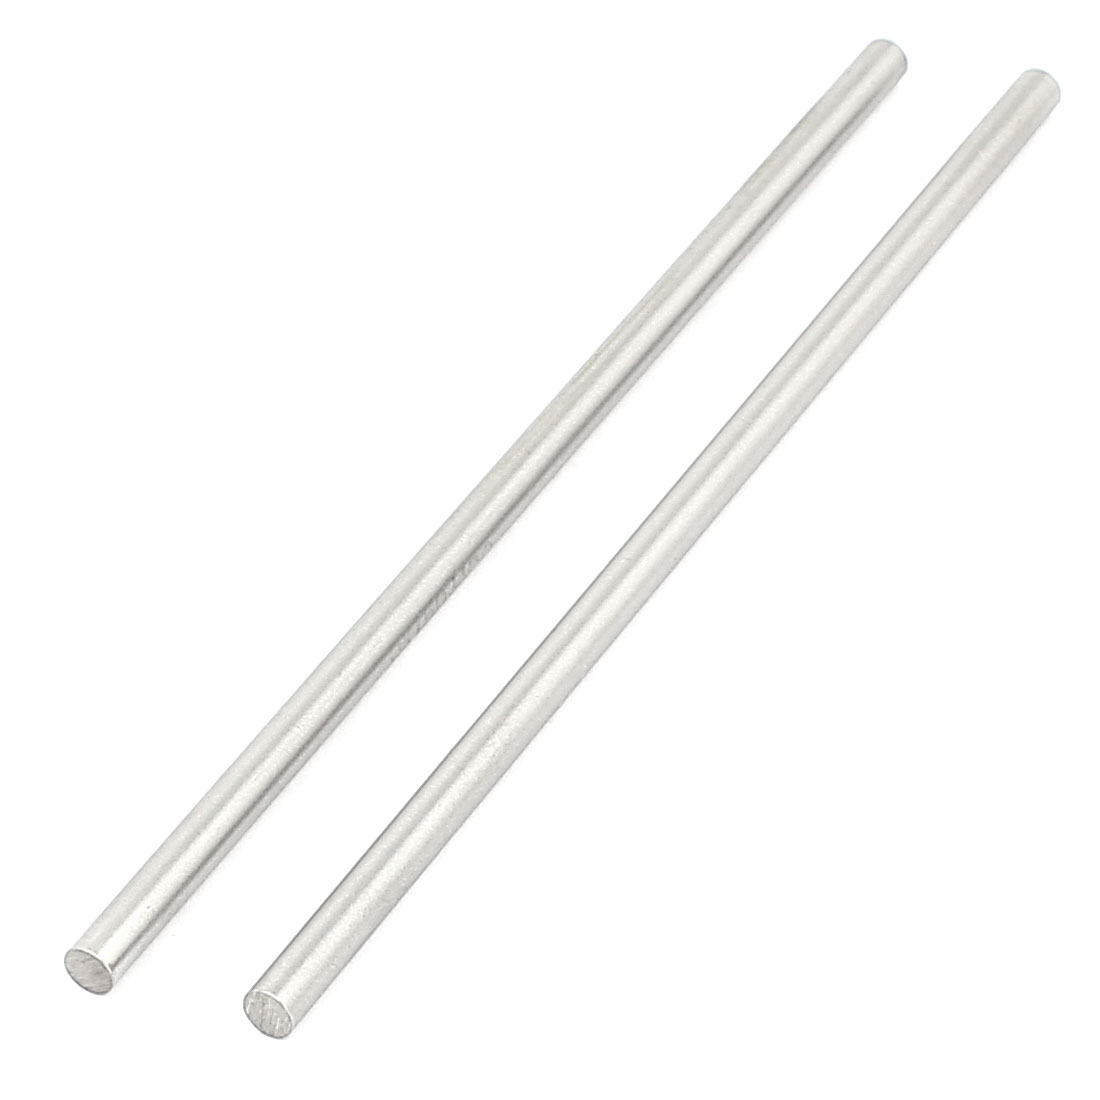 2 Pcs 5mm x 150mm DIY RC Car Toy Model Straight Metal Round Shaft Rod Bars